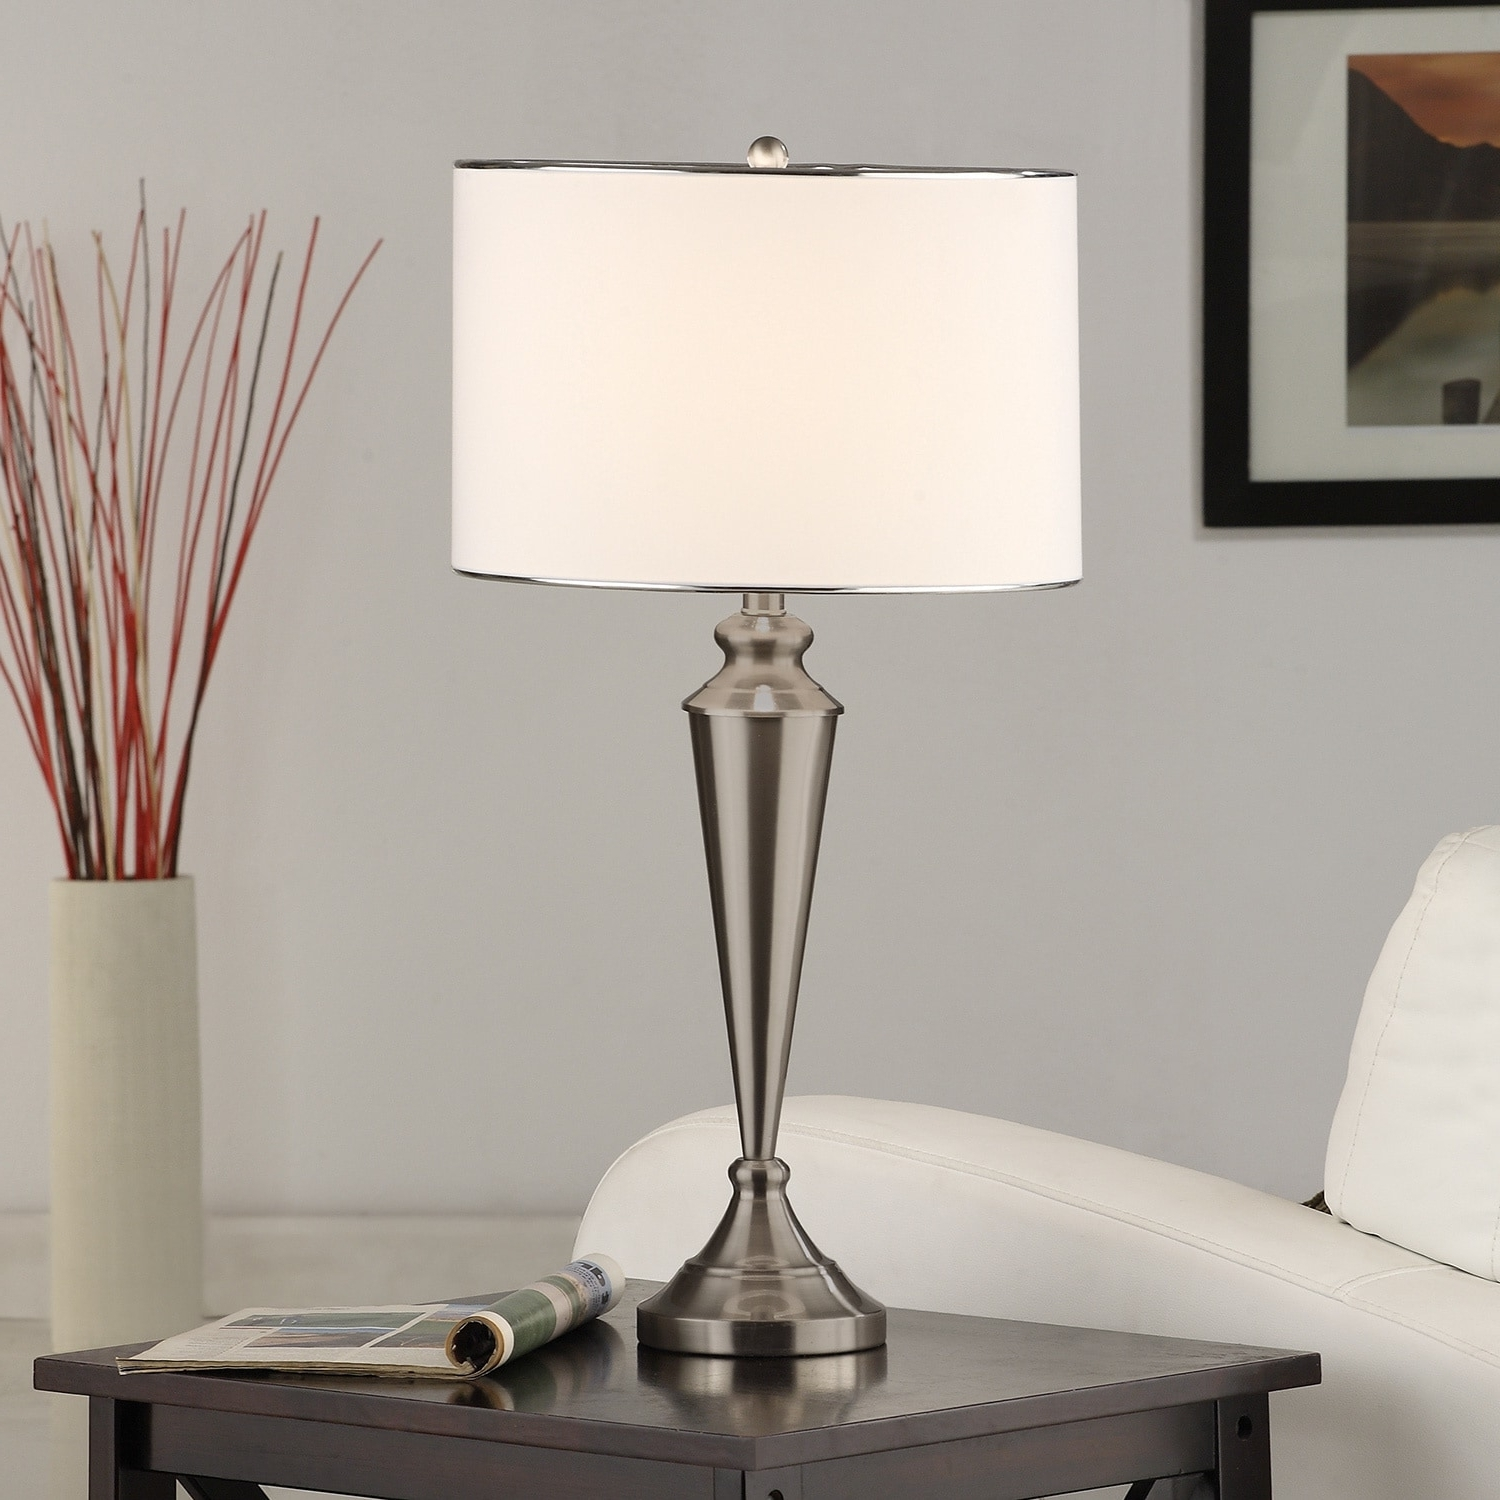 Shop Brushed Nickel Contemporary Table Lamp (Set Of 2) – Free Intended For Most Current Overstock Living Room Table Lamps (View 12 of 15)